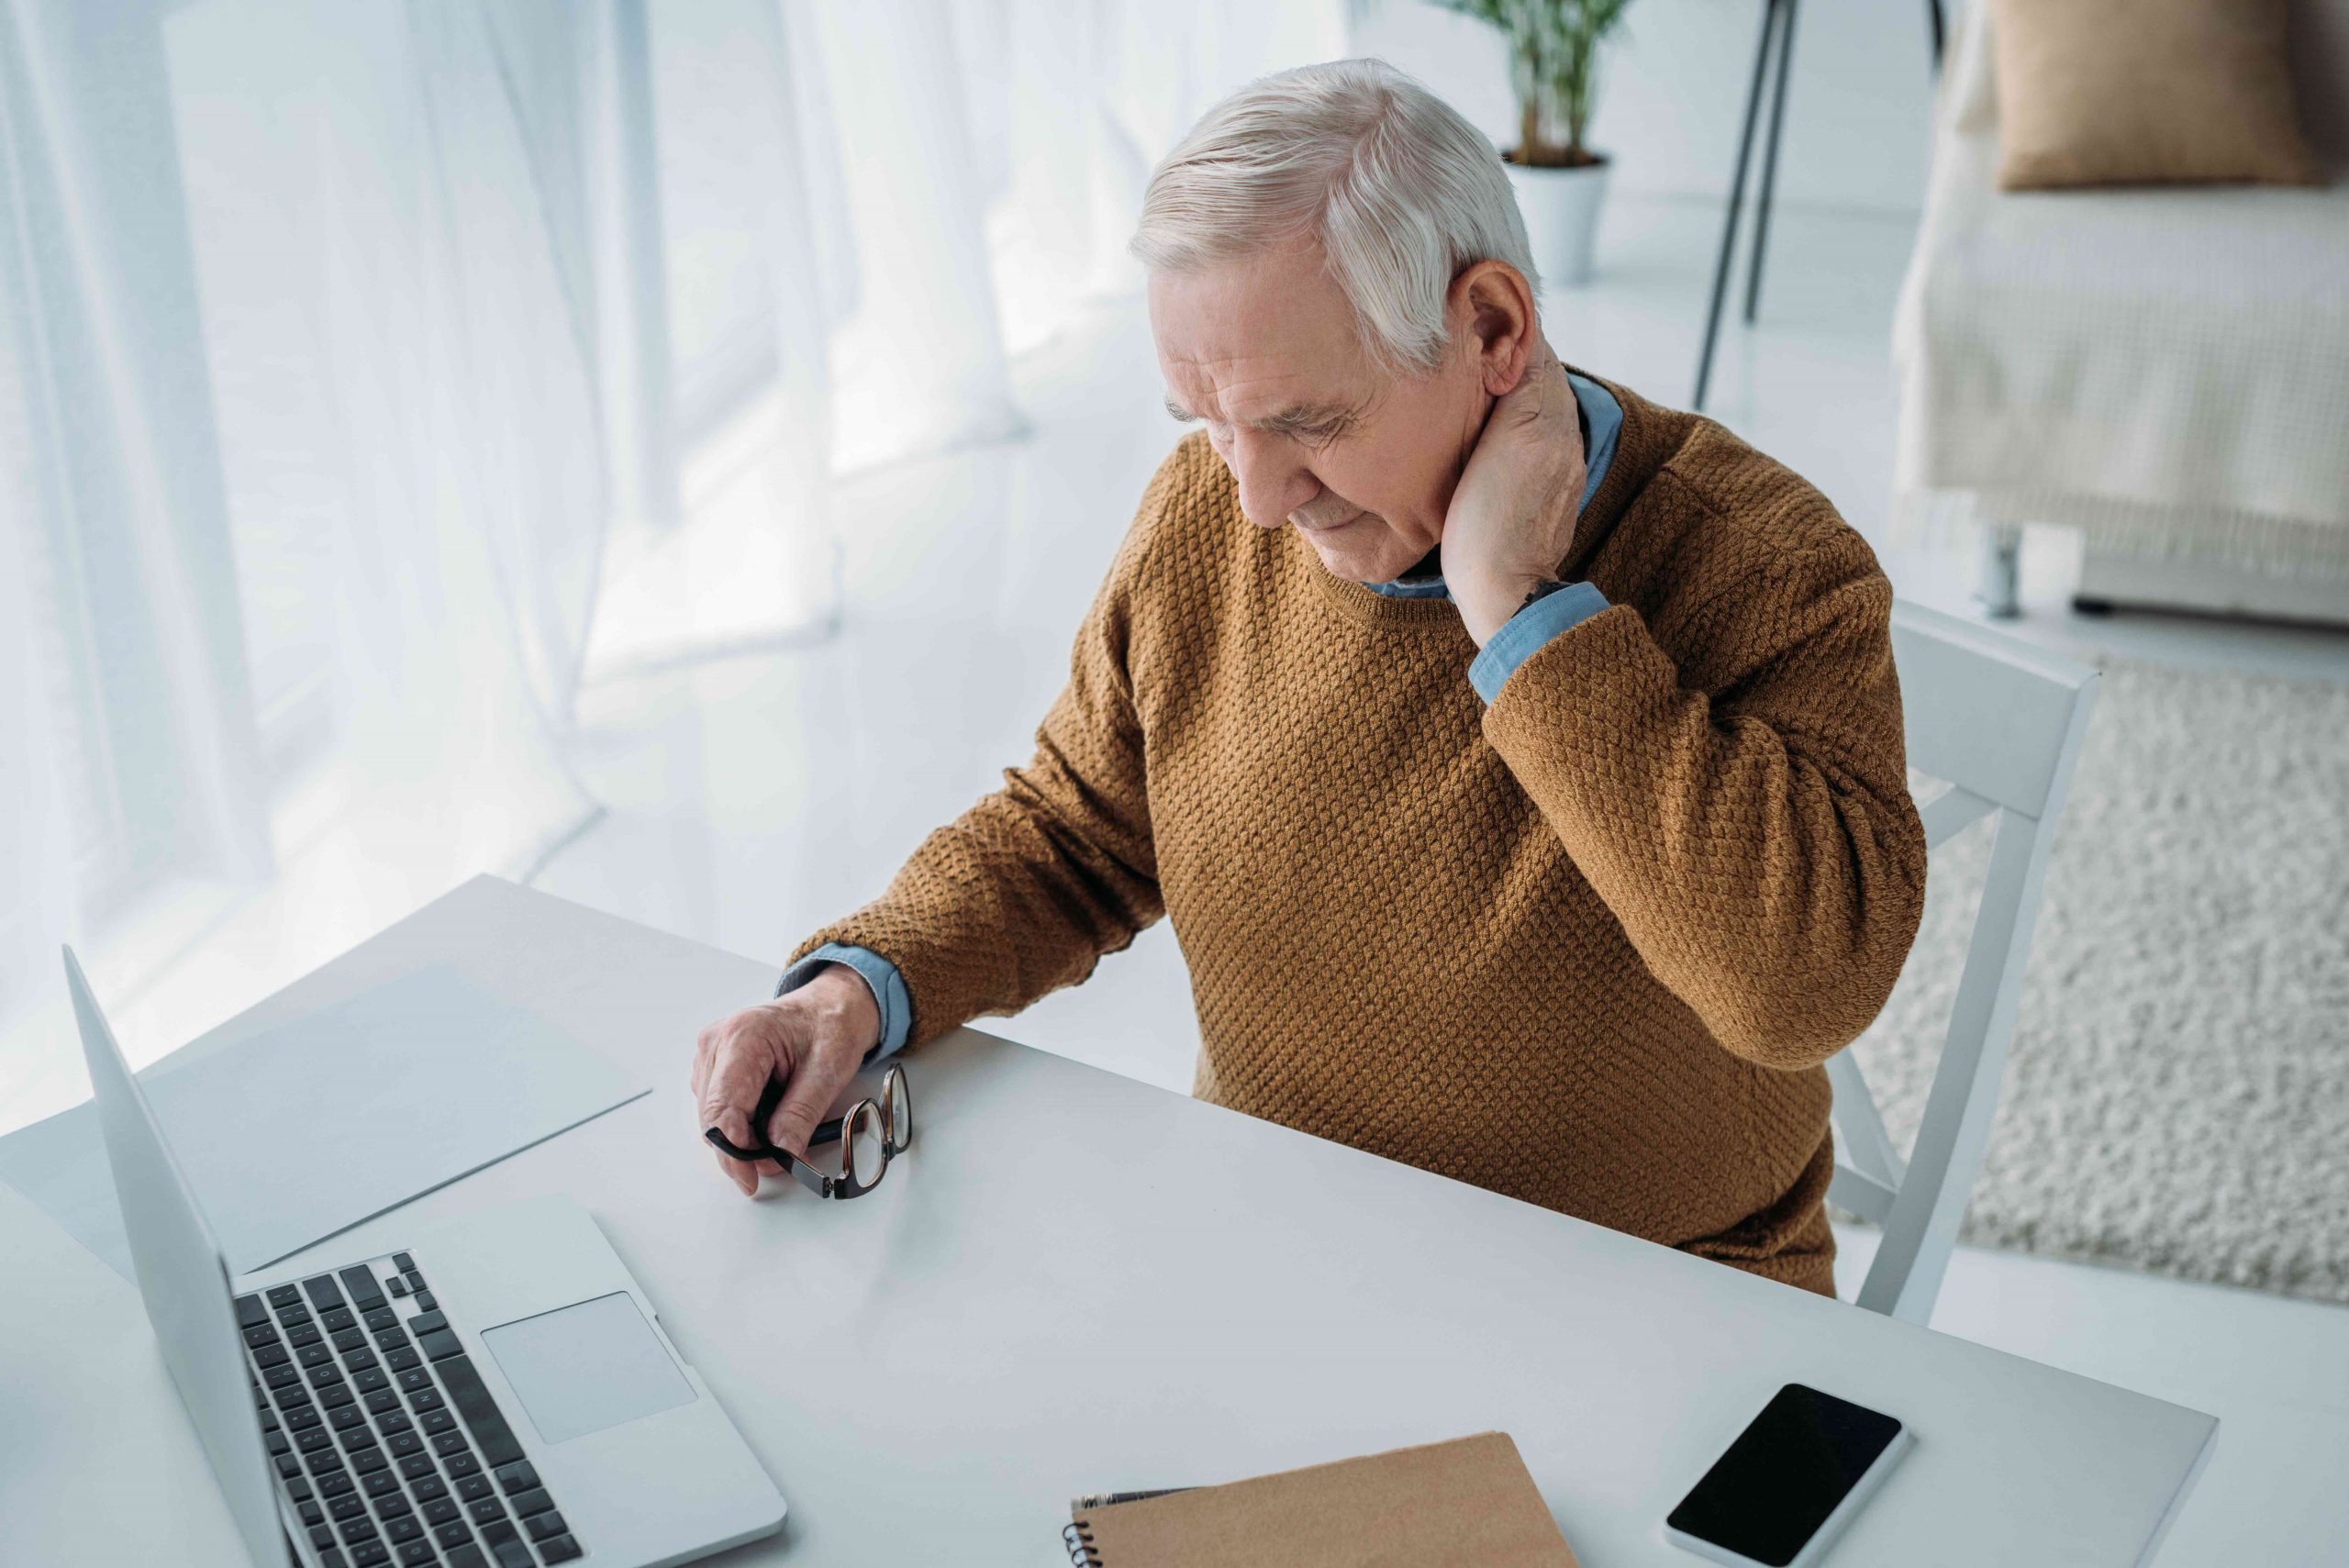 Senior man working in office and suffering from pain in neck